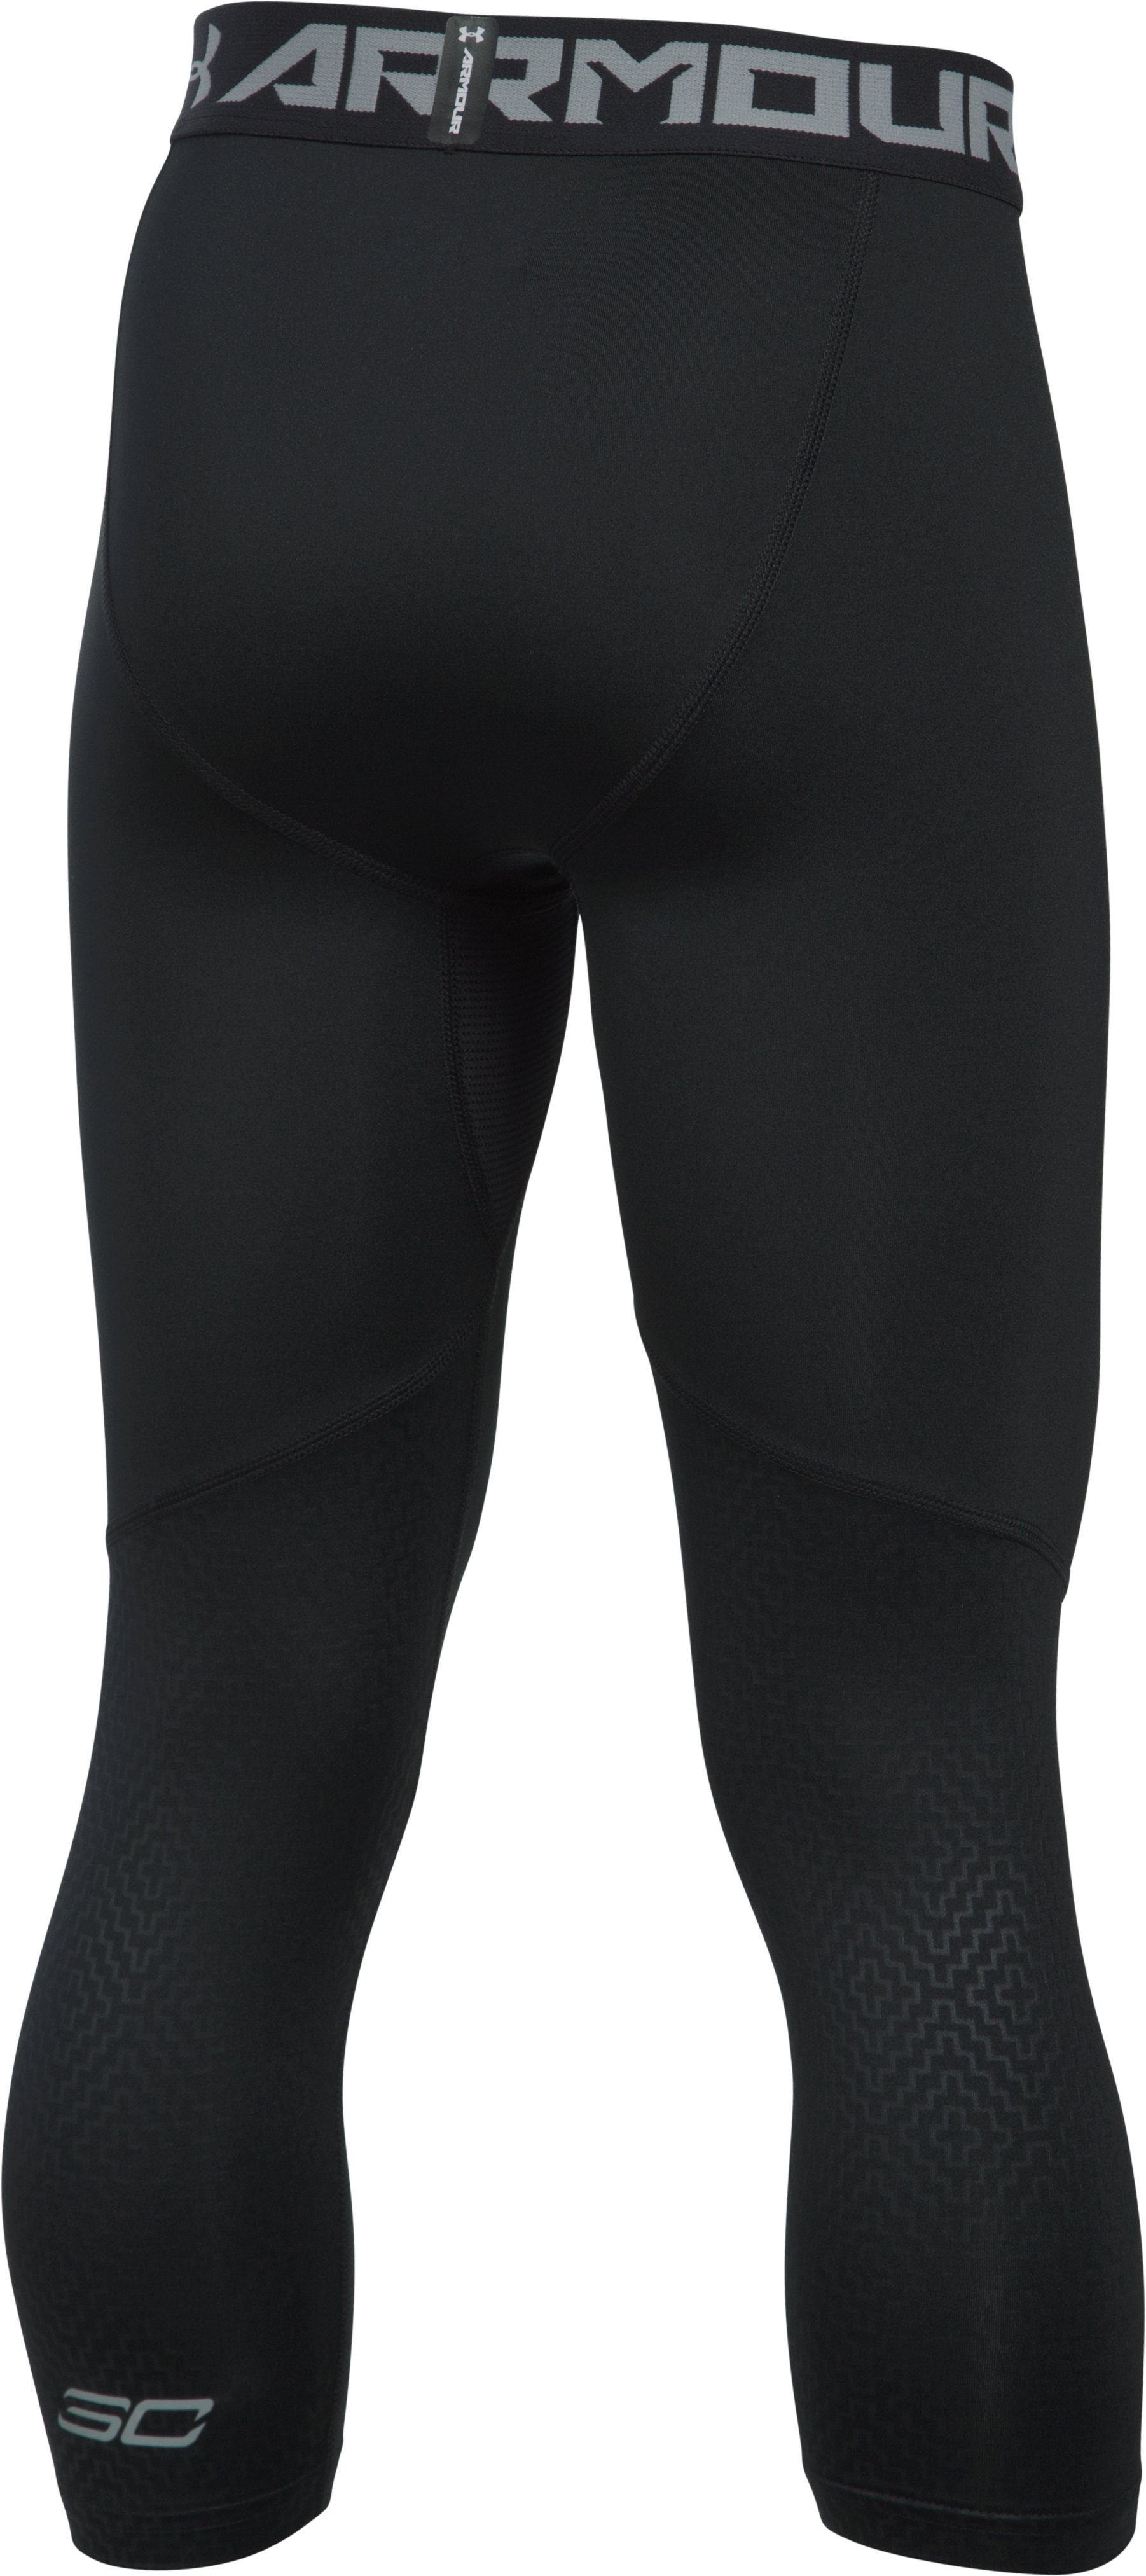 Boys' SC30 Spear ¾ Legging, Black